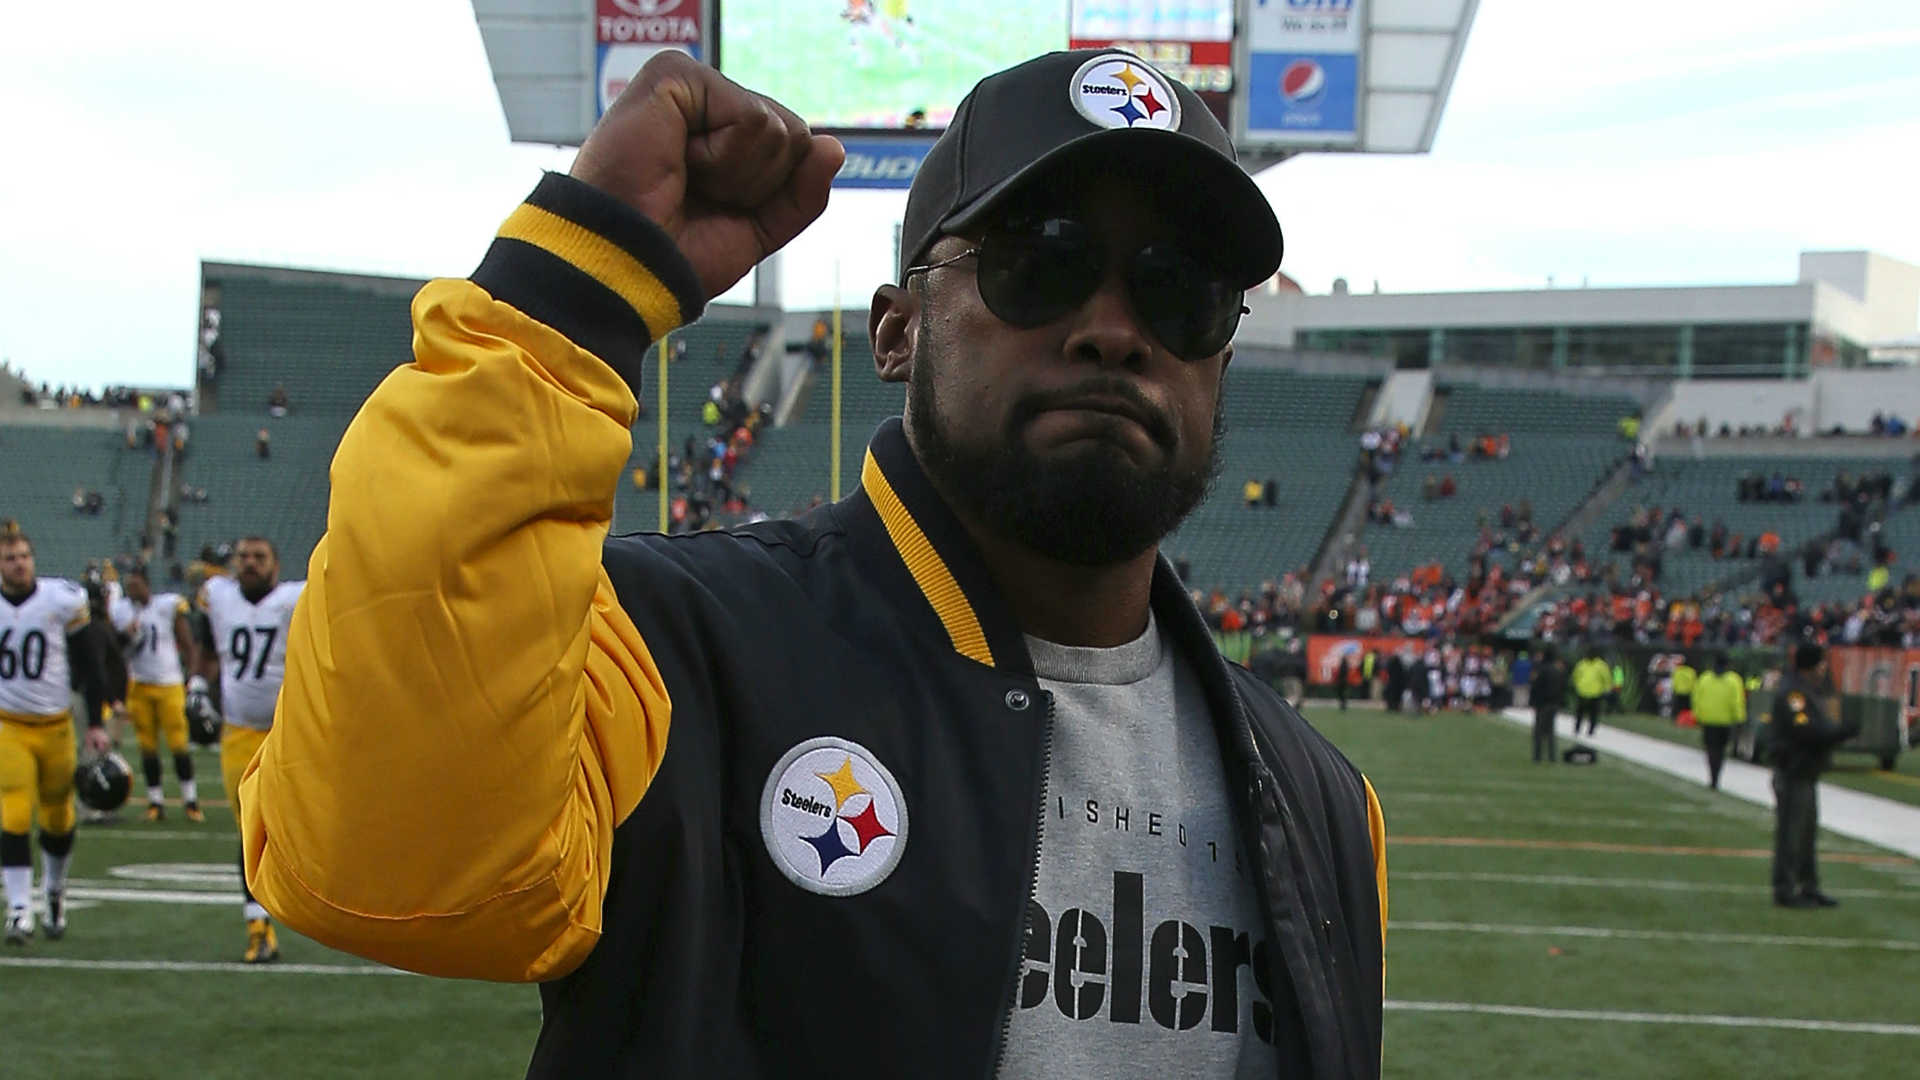 Steelers coach Tomlin extends contract through 2020